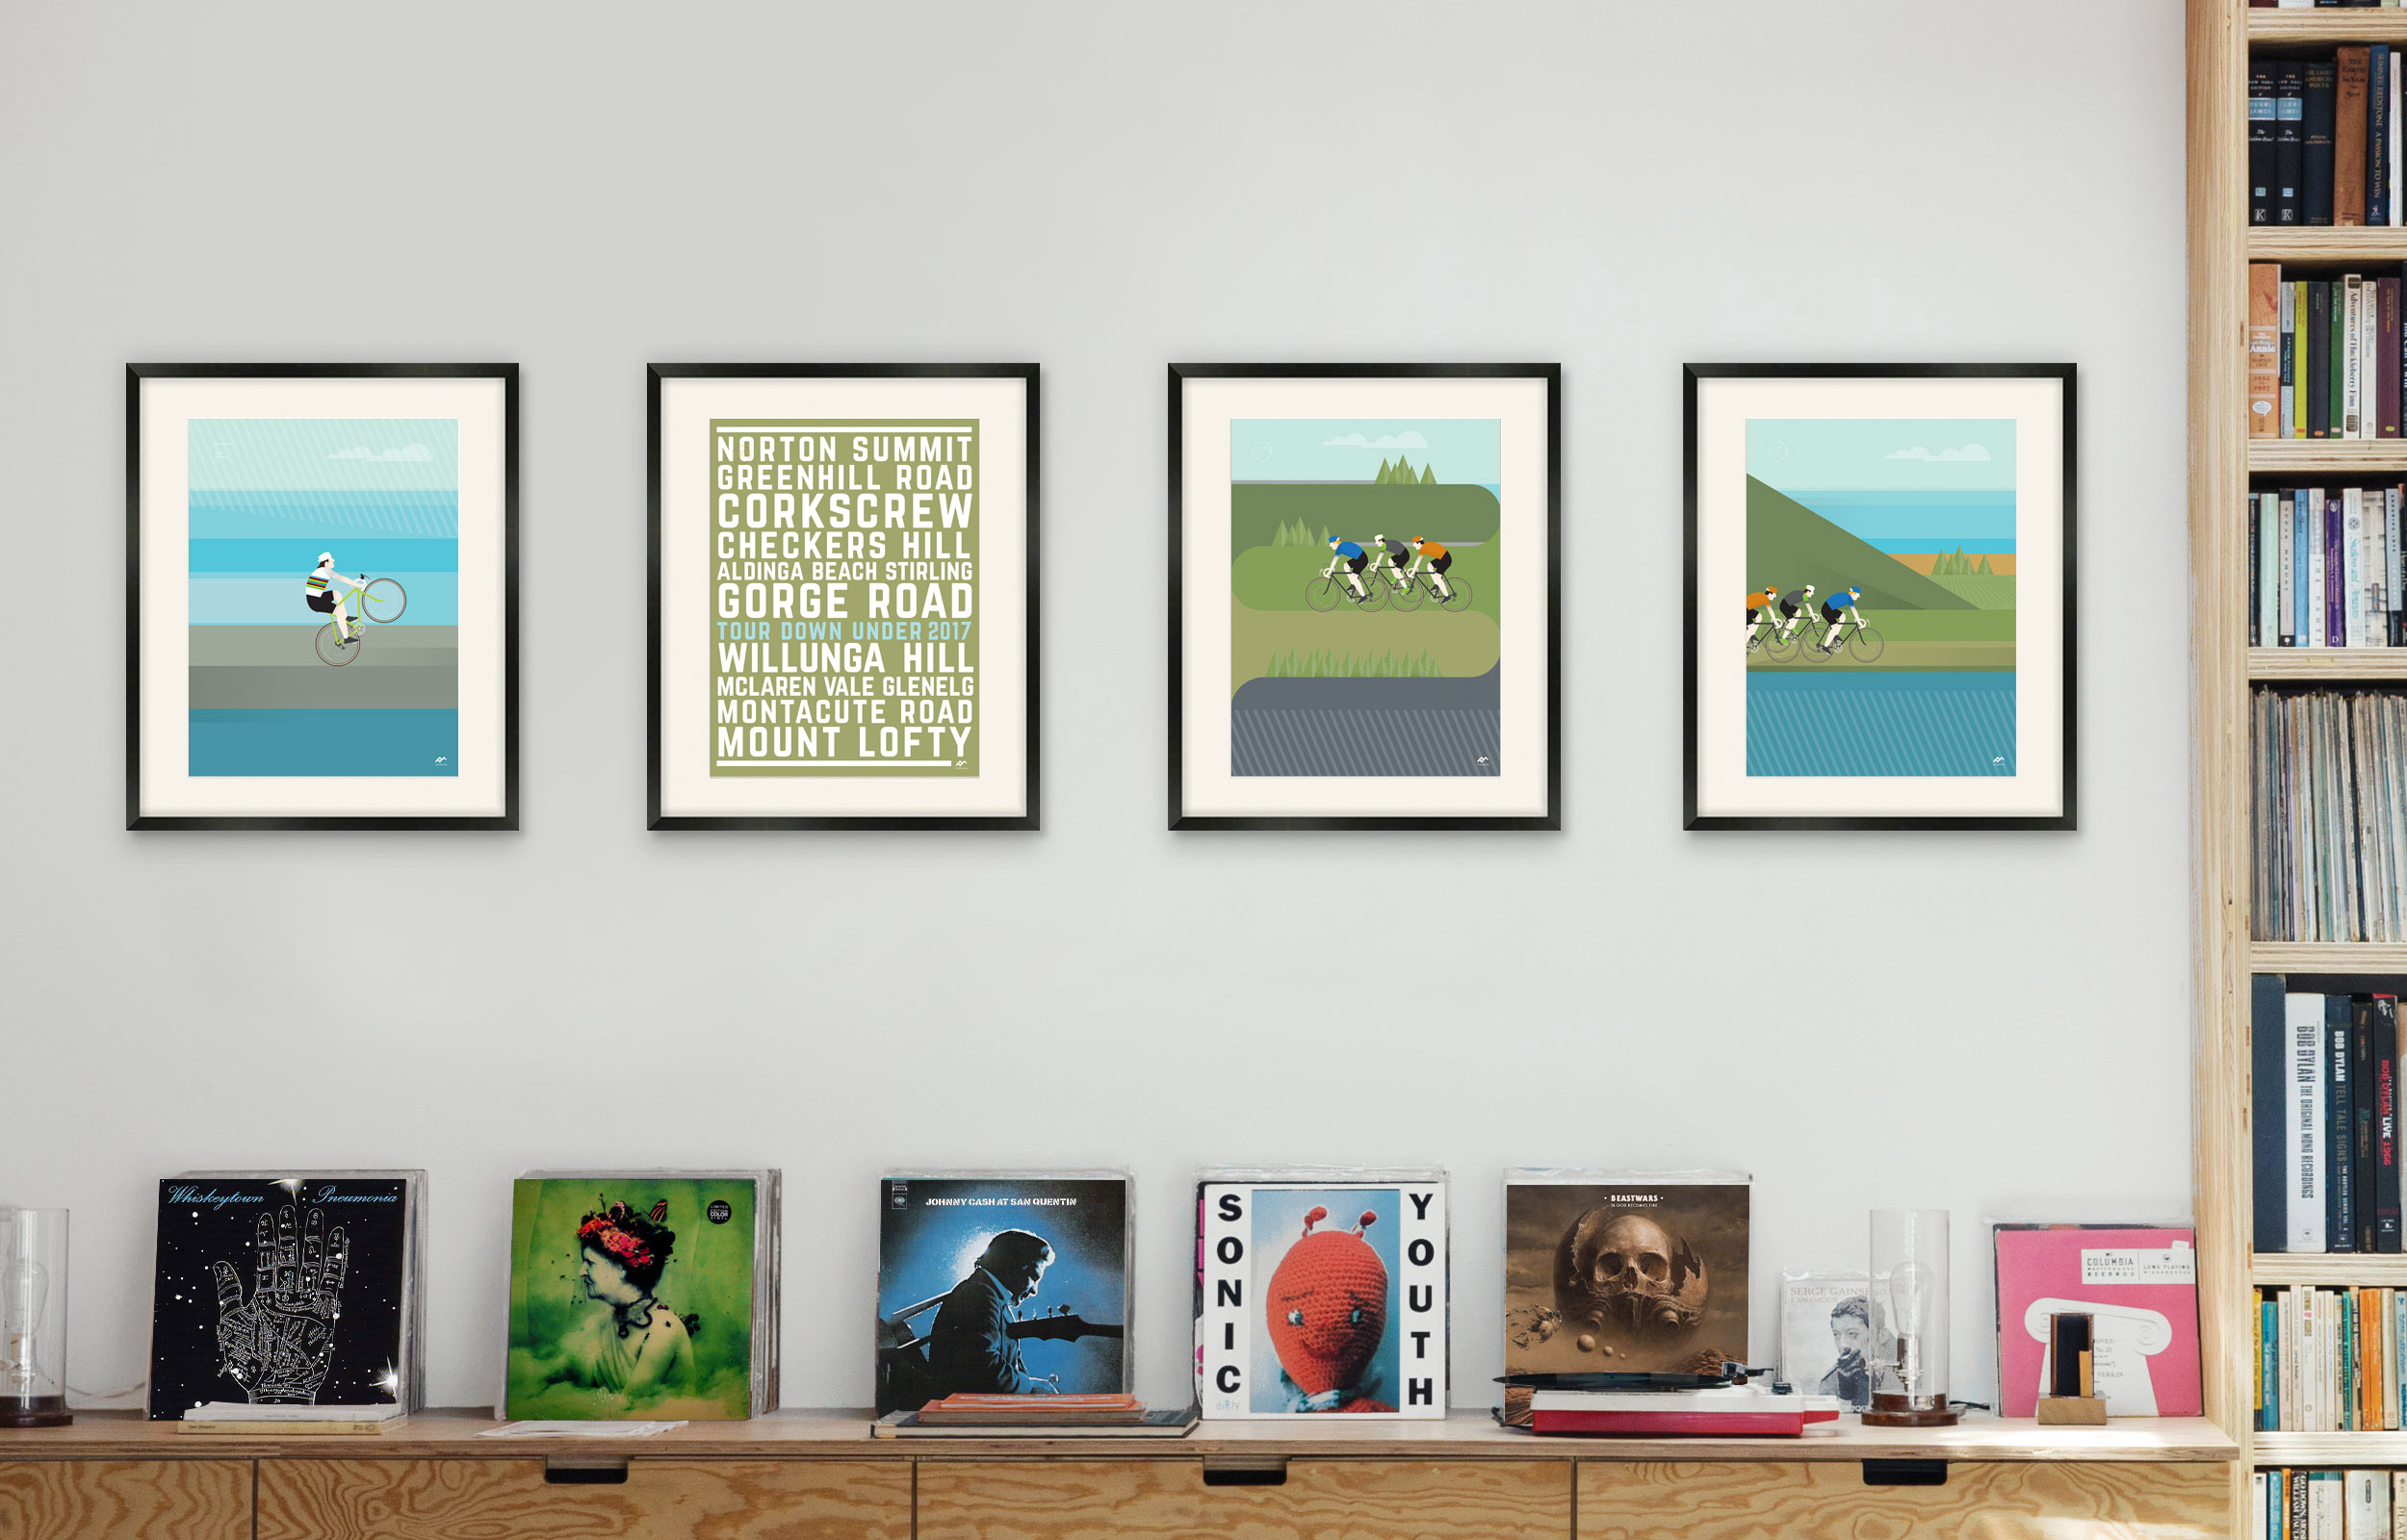 velopsters, sagn triple wc, adelaide roads, corkscrew climb, willunga hill limited edition prints